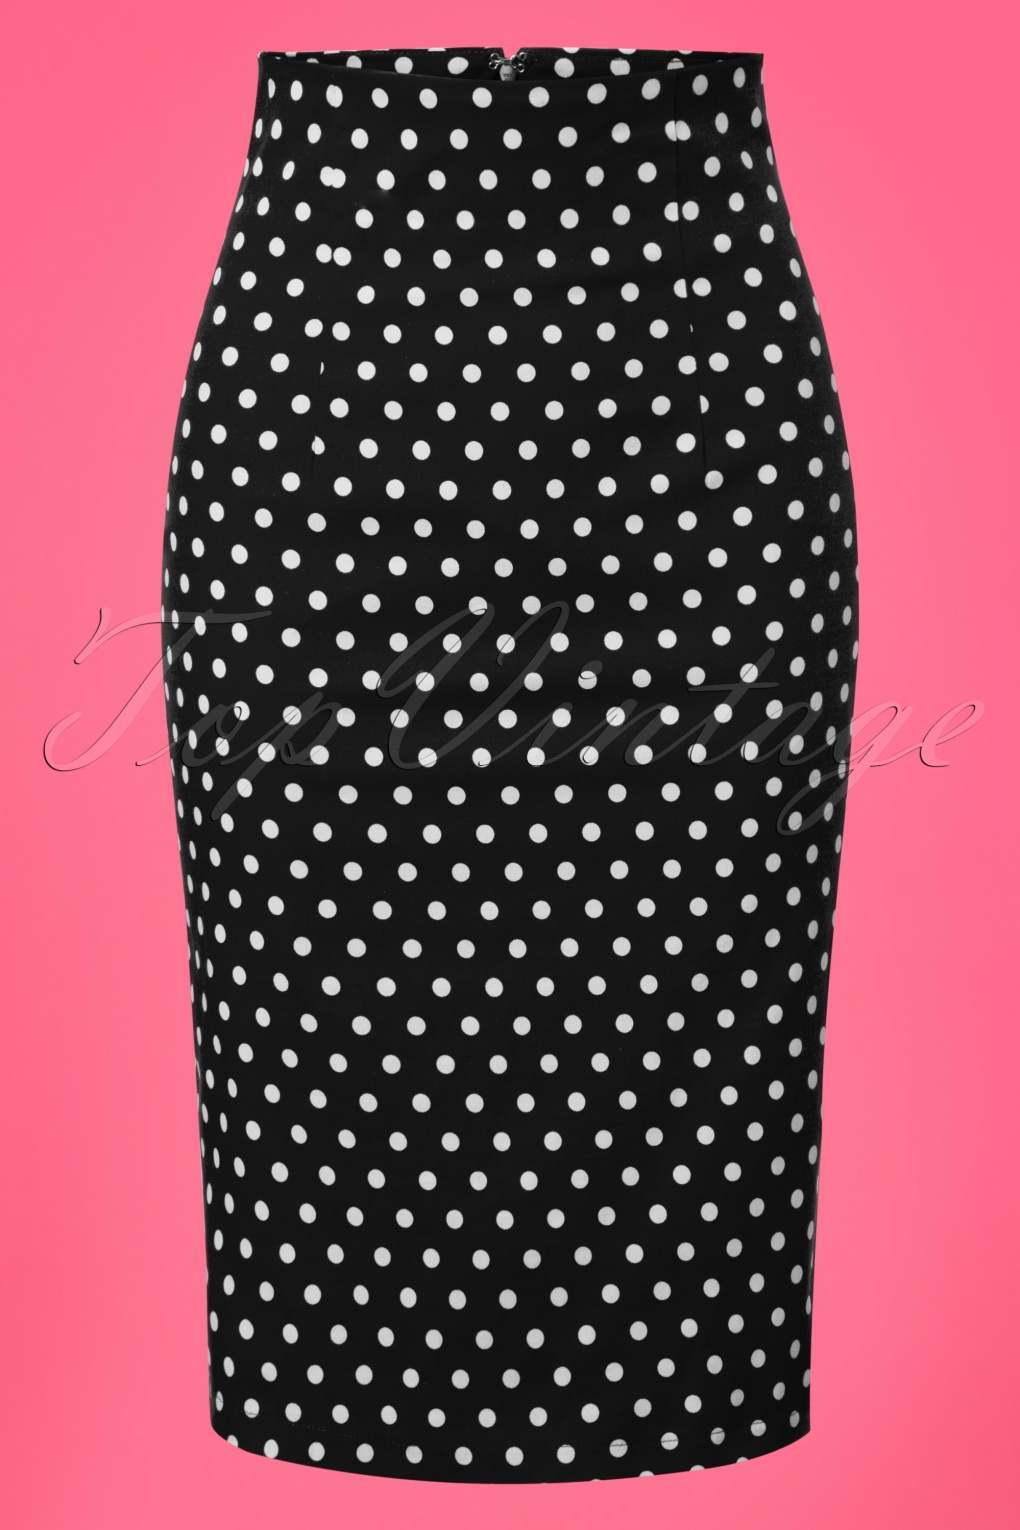 Retro Skirts: Vintage, Pencil, Circle, & Plus Sizes 50s Falda Polkadot Pencil Skirt in Black £35.35 AT vintagedancer.com